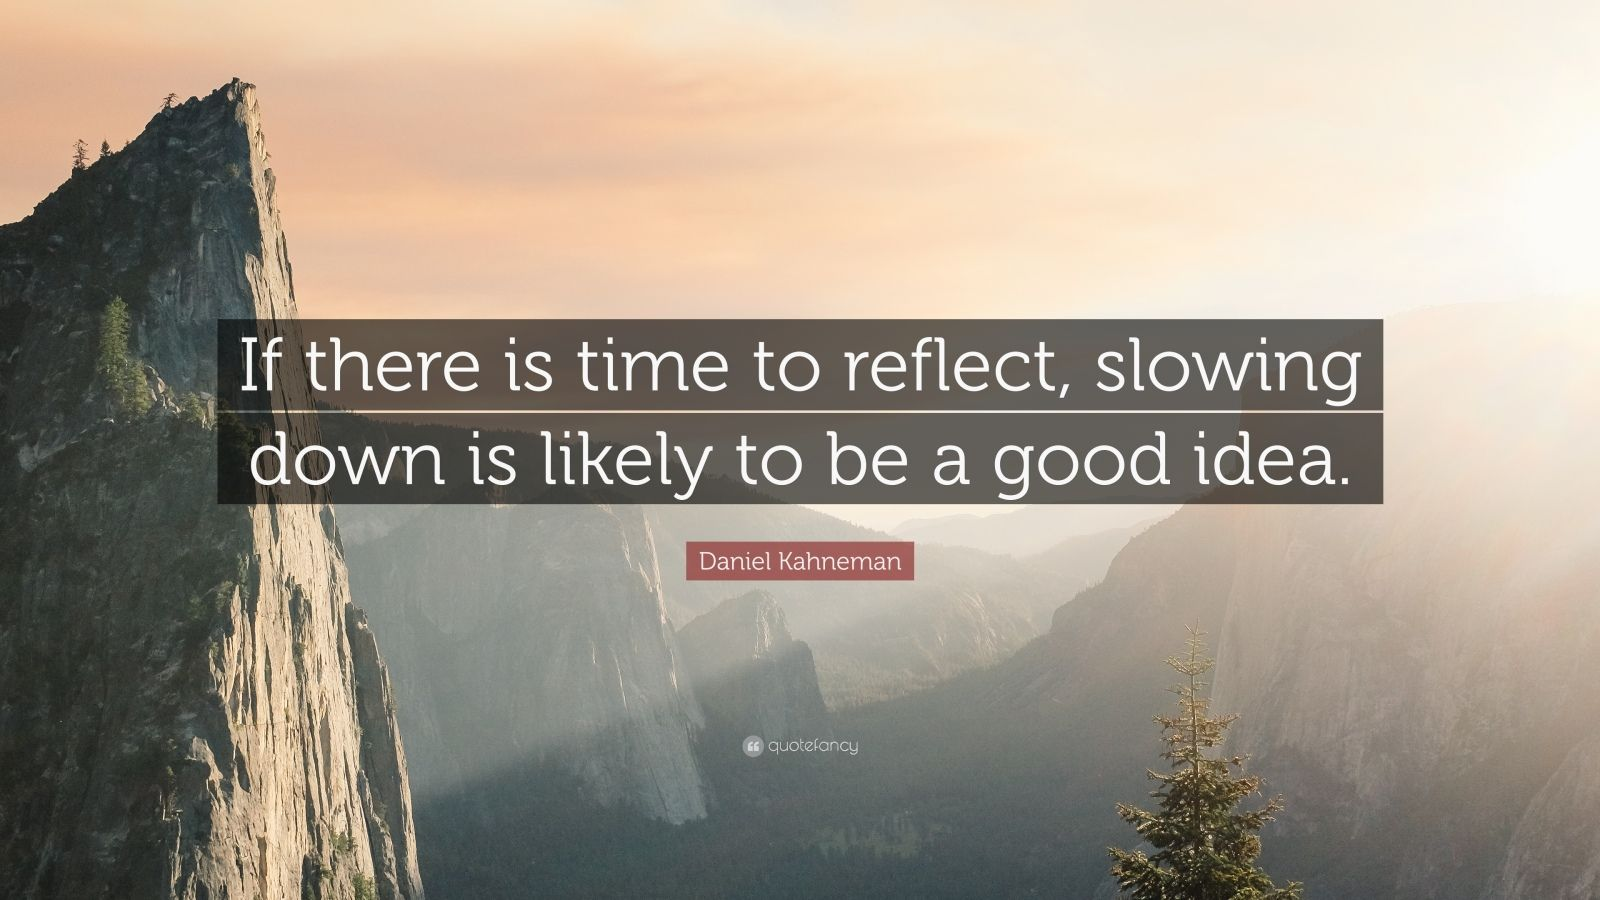 """Daniel Kahneman Quote: """"If there is time to reflect, slowing down is likely to be a good idea."""""""